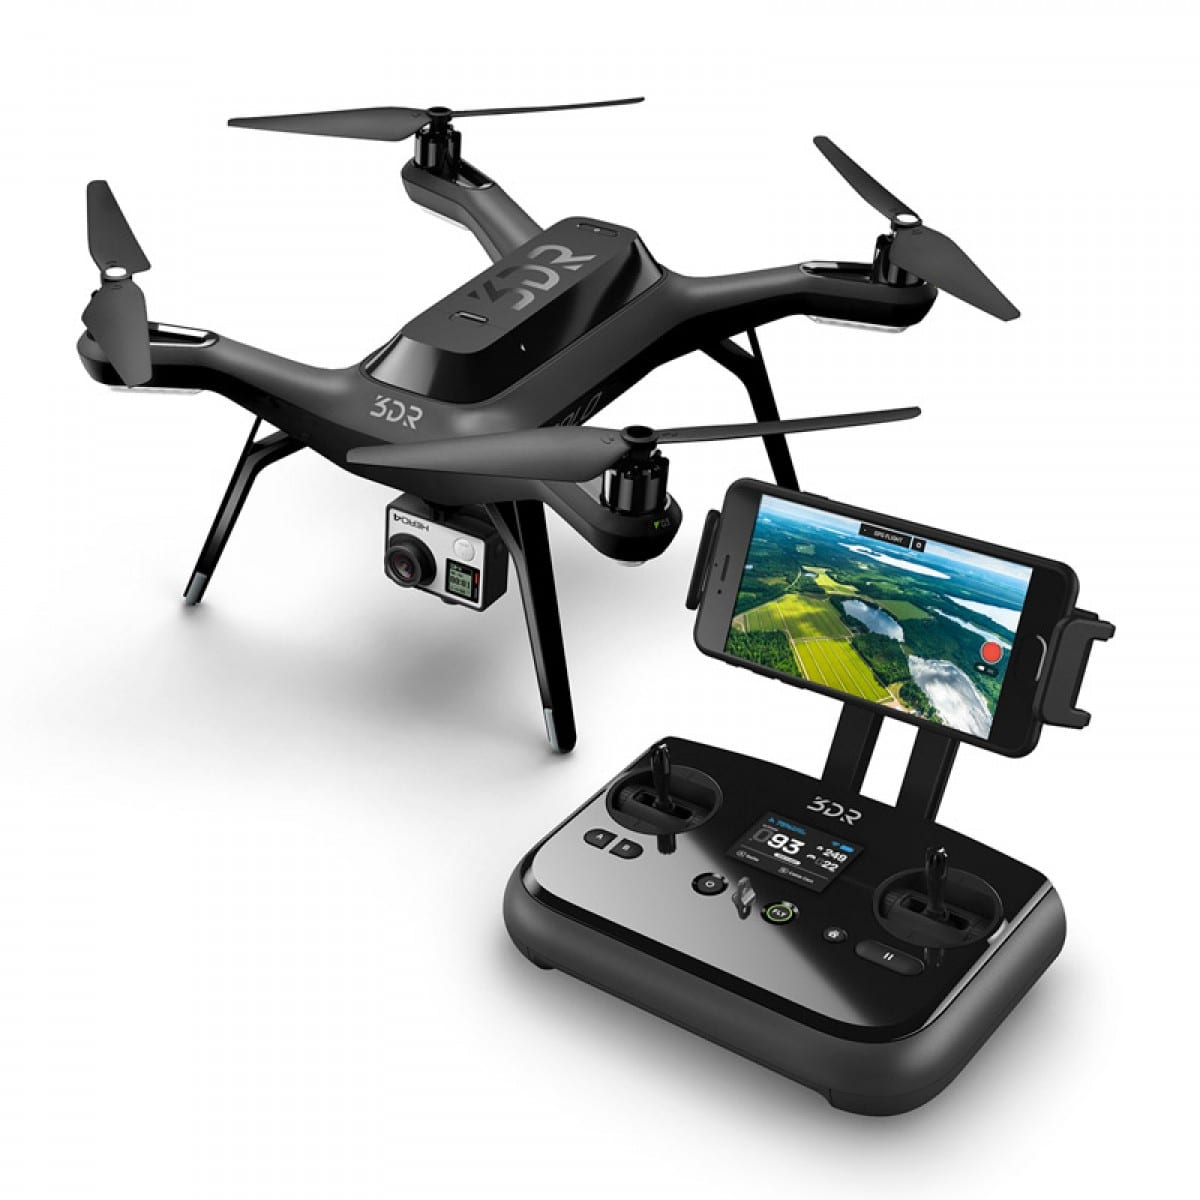 3DR Solo Drone video package